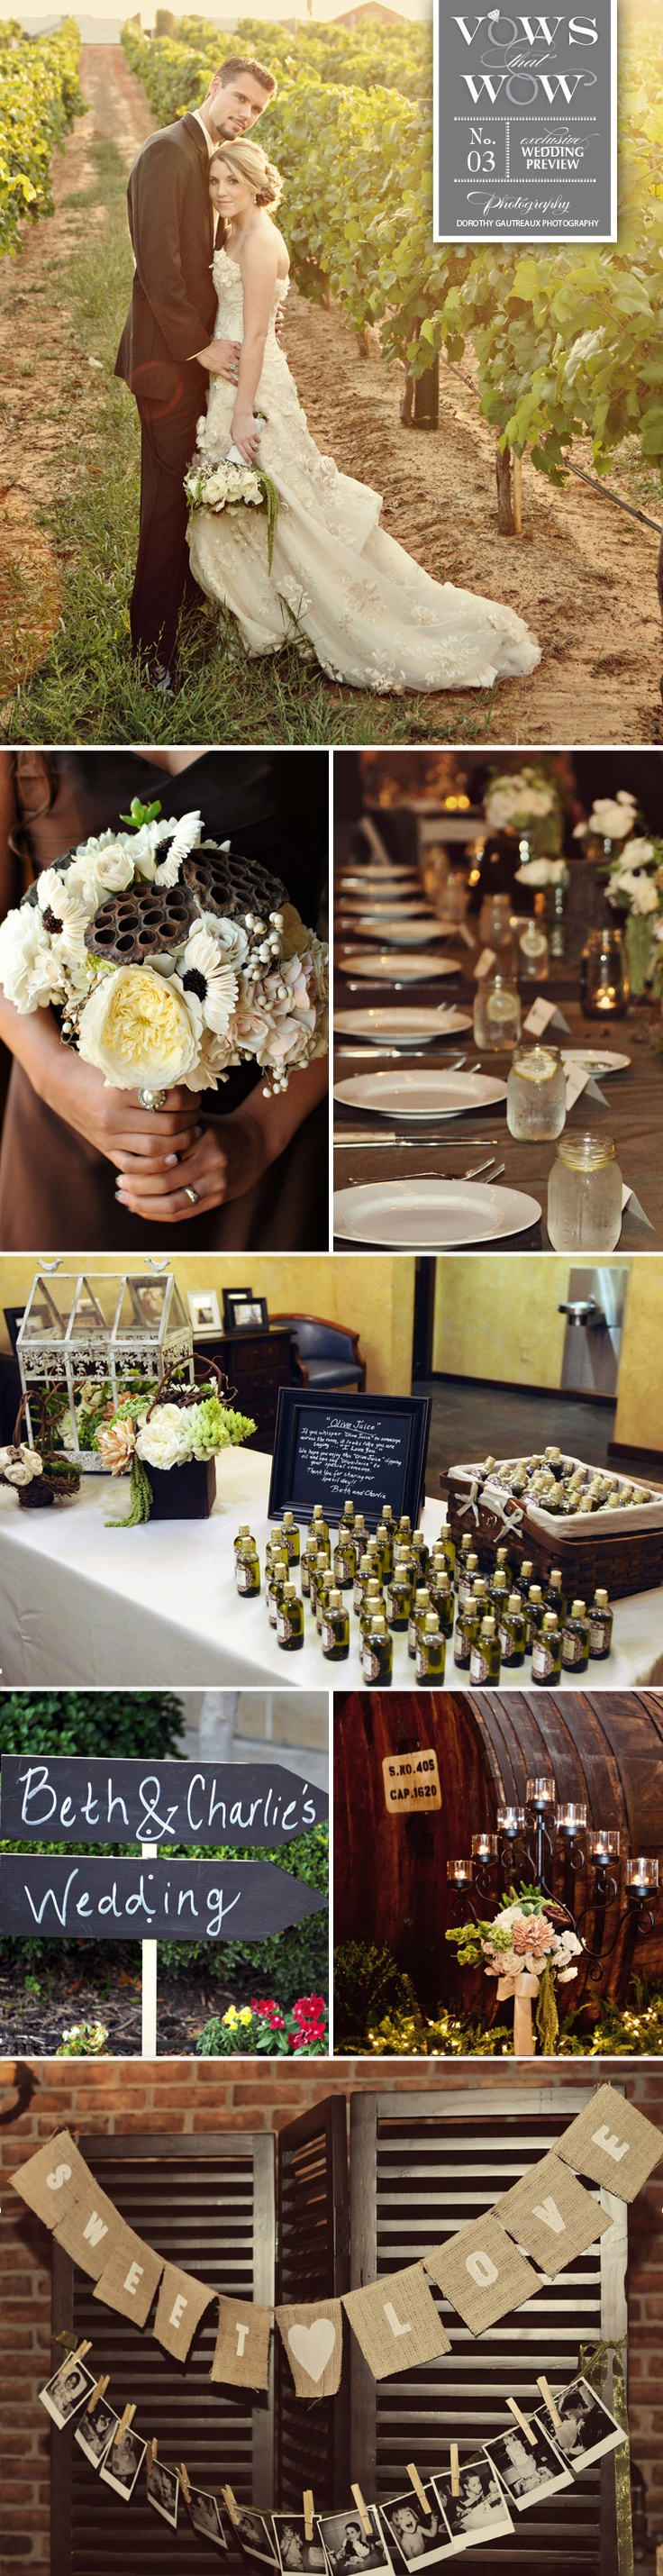 Amazing vineyard wedding planned by Significant Events of Texas. Gorgeous florals from Lush Couture Floral!   Photos by Dorothy Gautreaux Photography  #vineyard #wedding